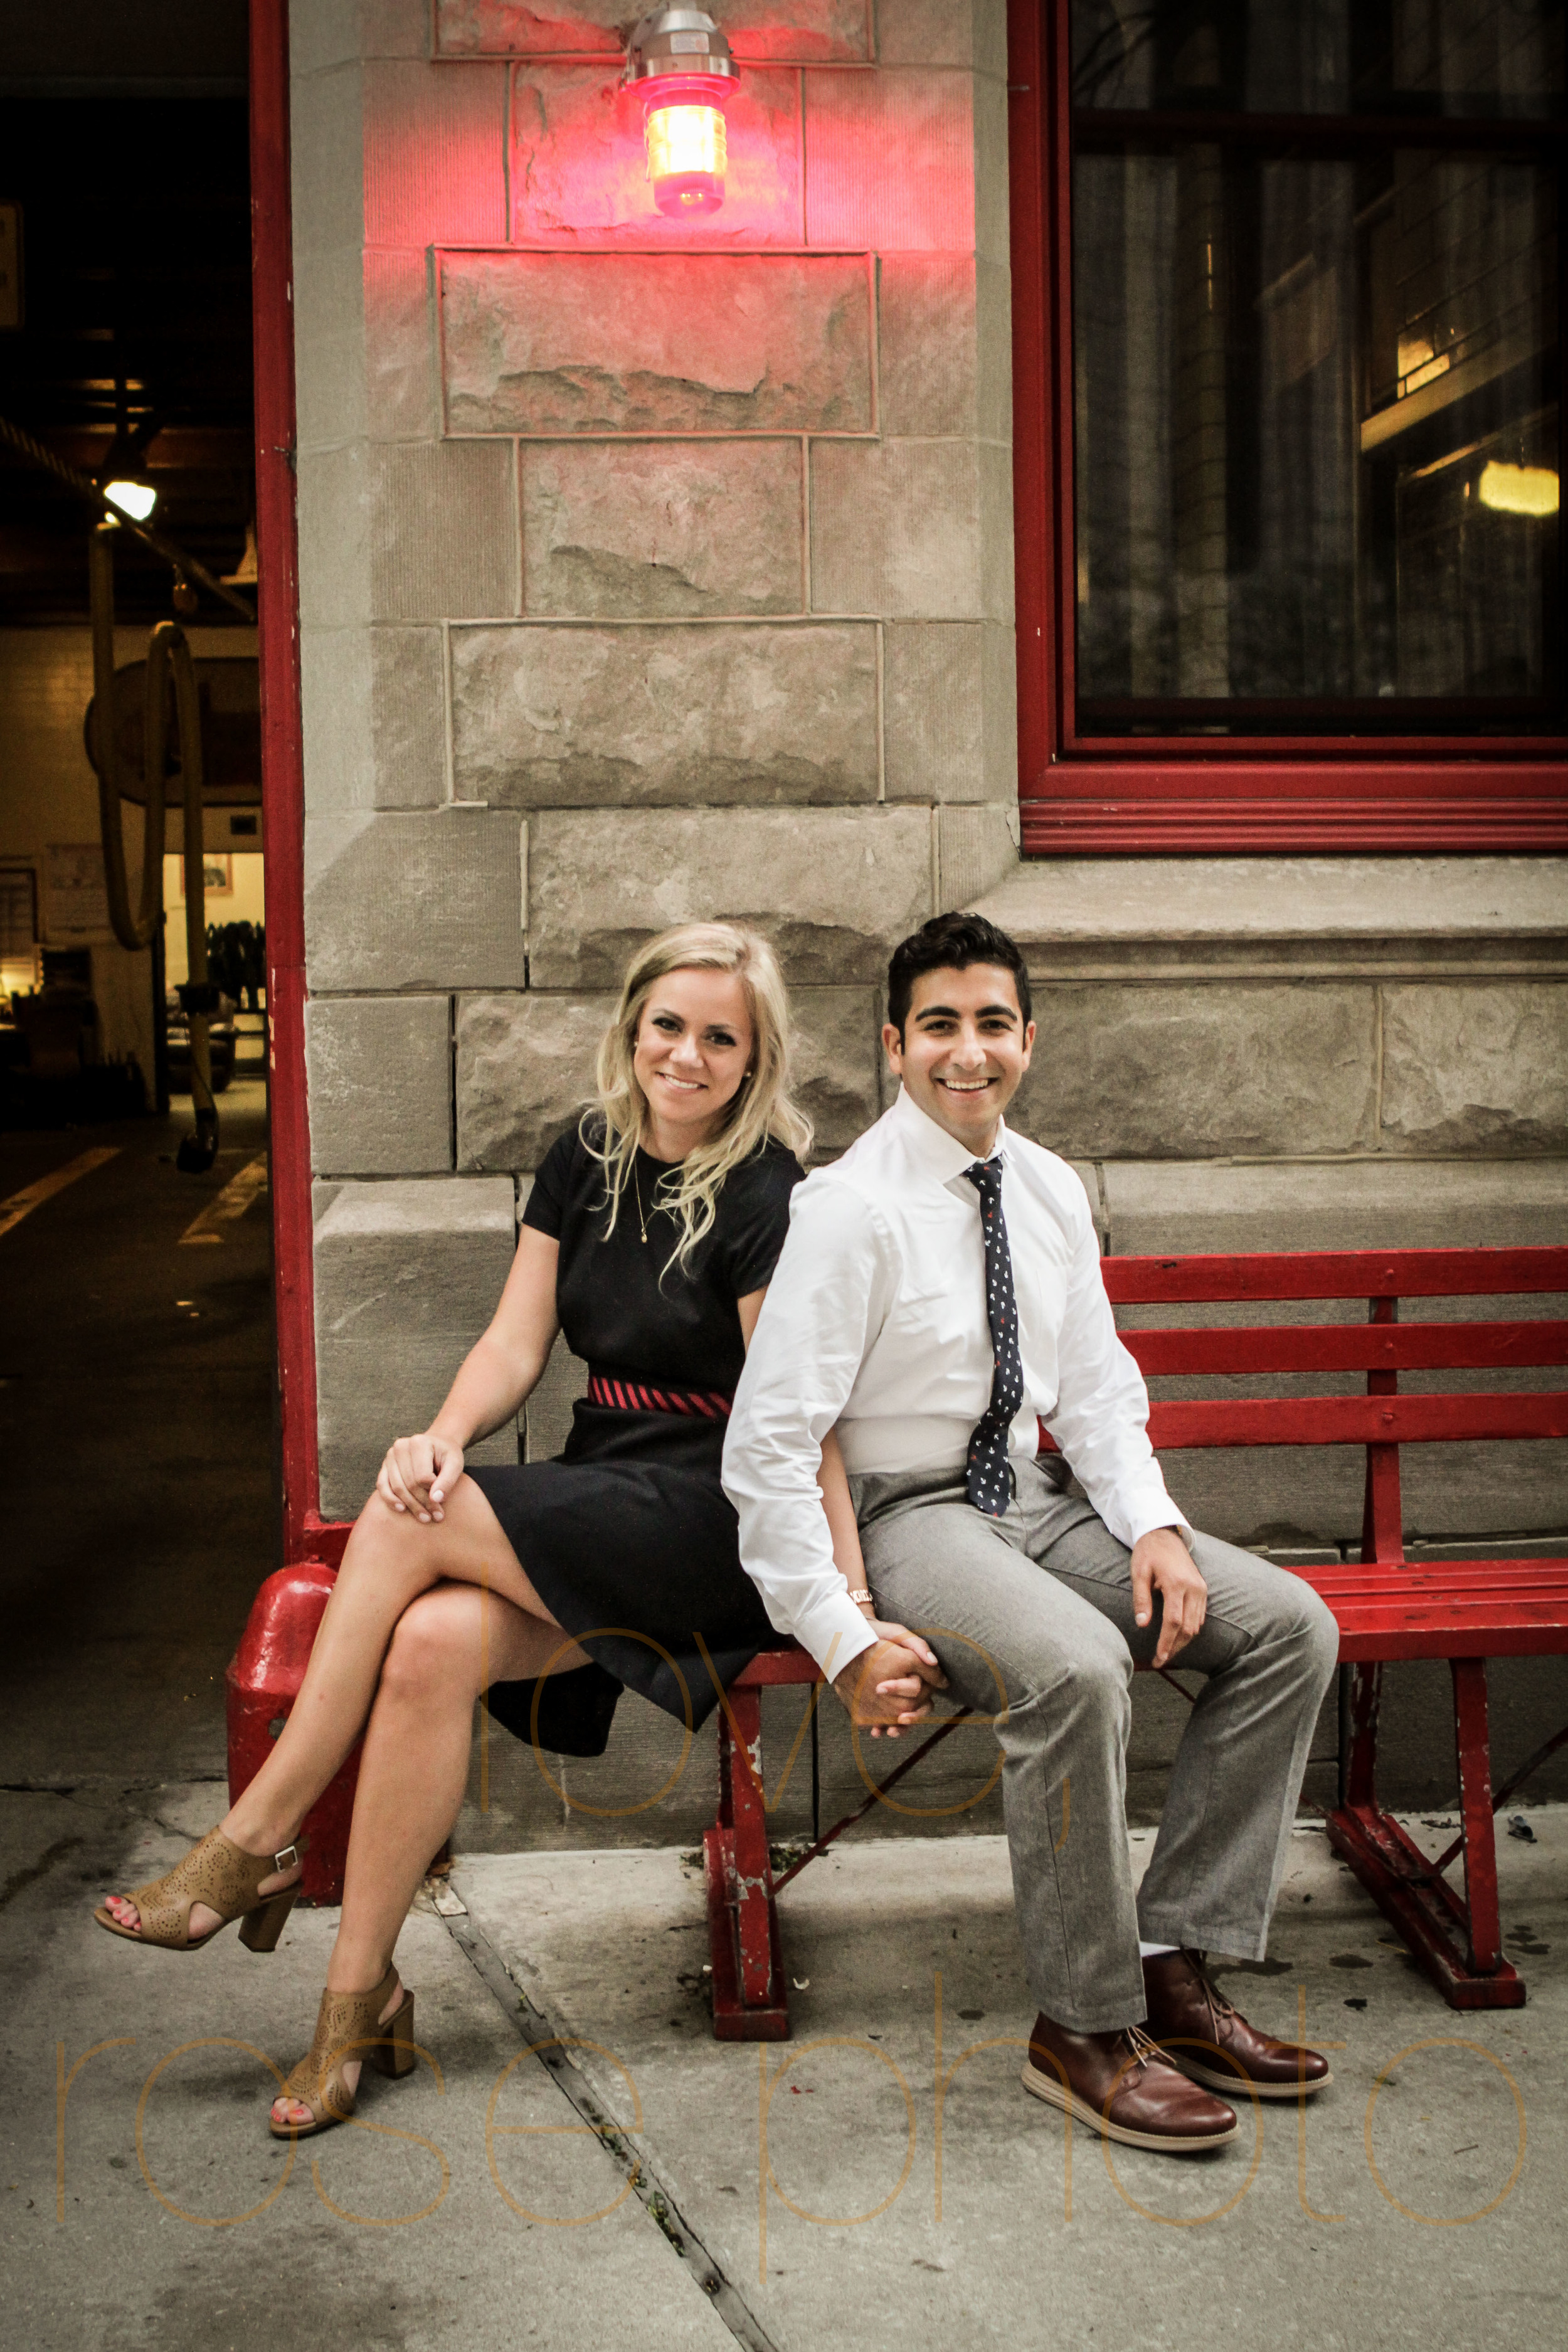 Amy + Ammar engagment shoot downtown drumbar magnificante mile chicago river wedding photographer-010.jpg